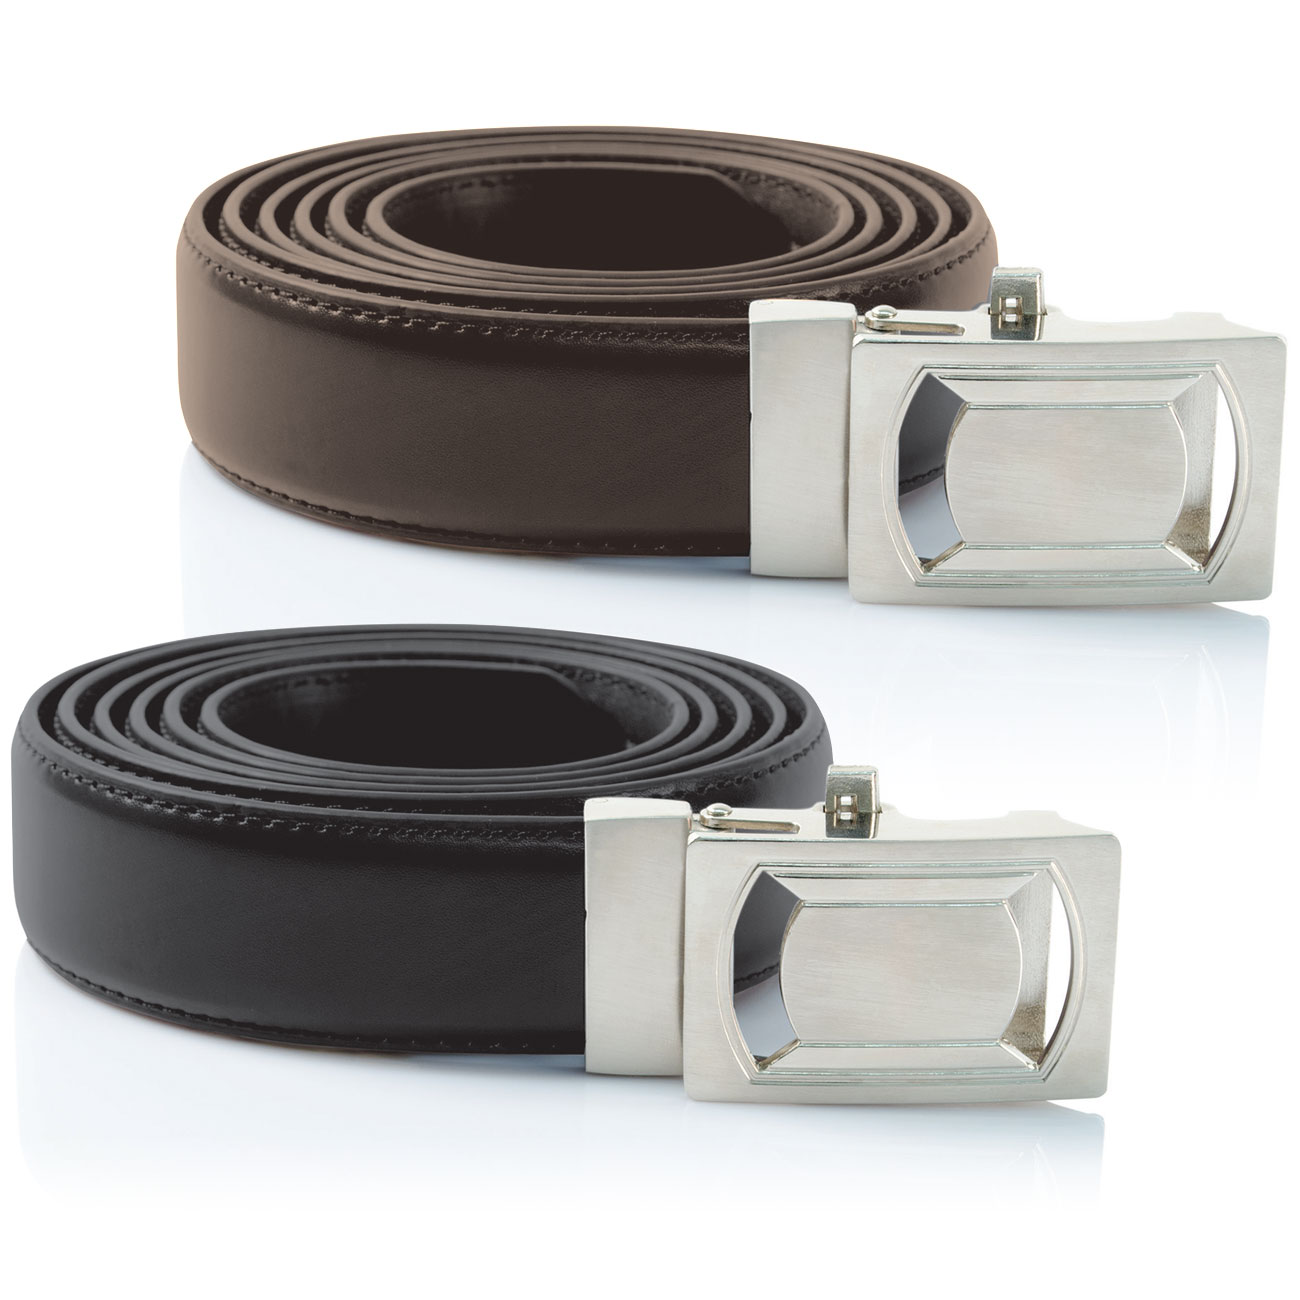 Ideaworks Custom Fit Belts - Black + Brown 2-Pack